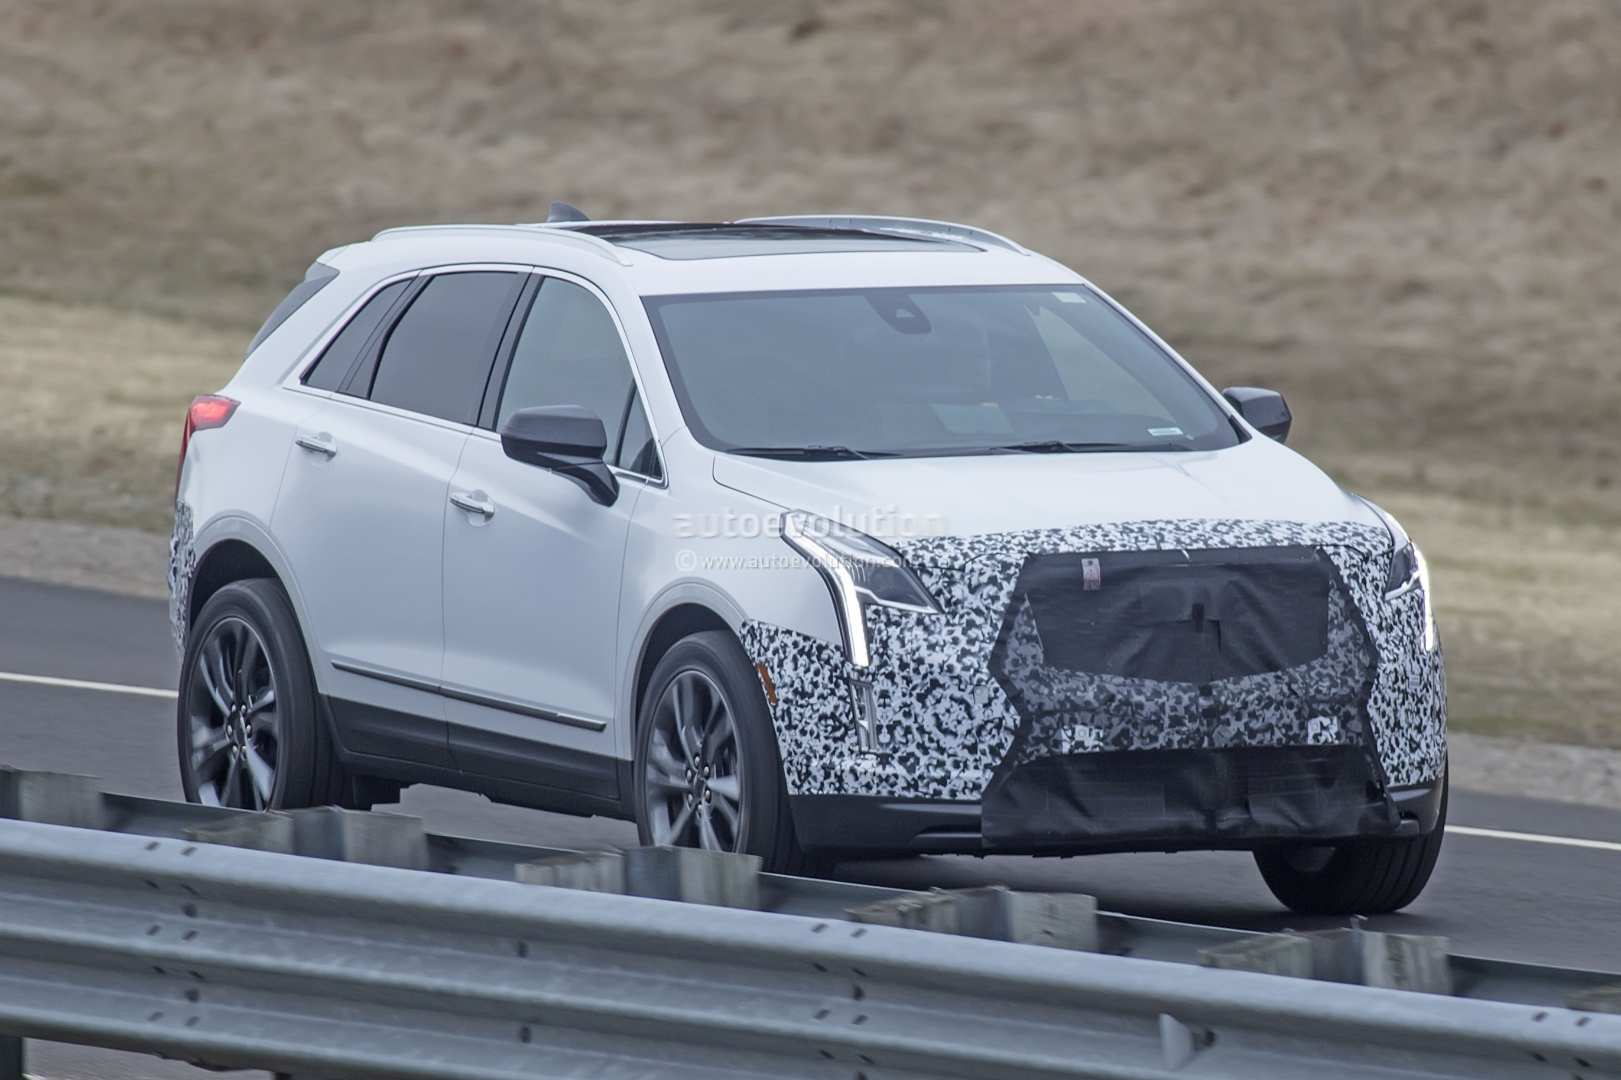 40 All New 2019 Spy Shots Cadillac Xt5 Performance and New Engine for 2019 Spy Shots Cadillac Xt5